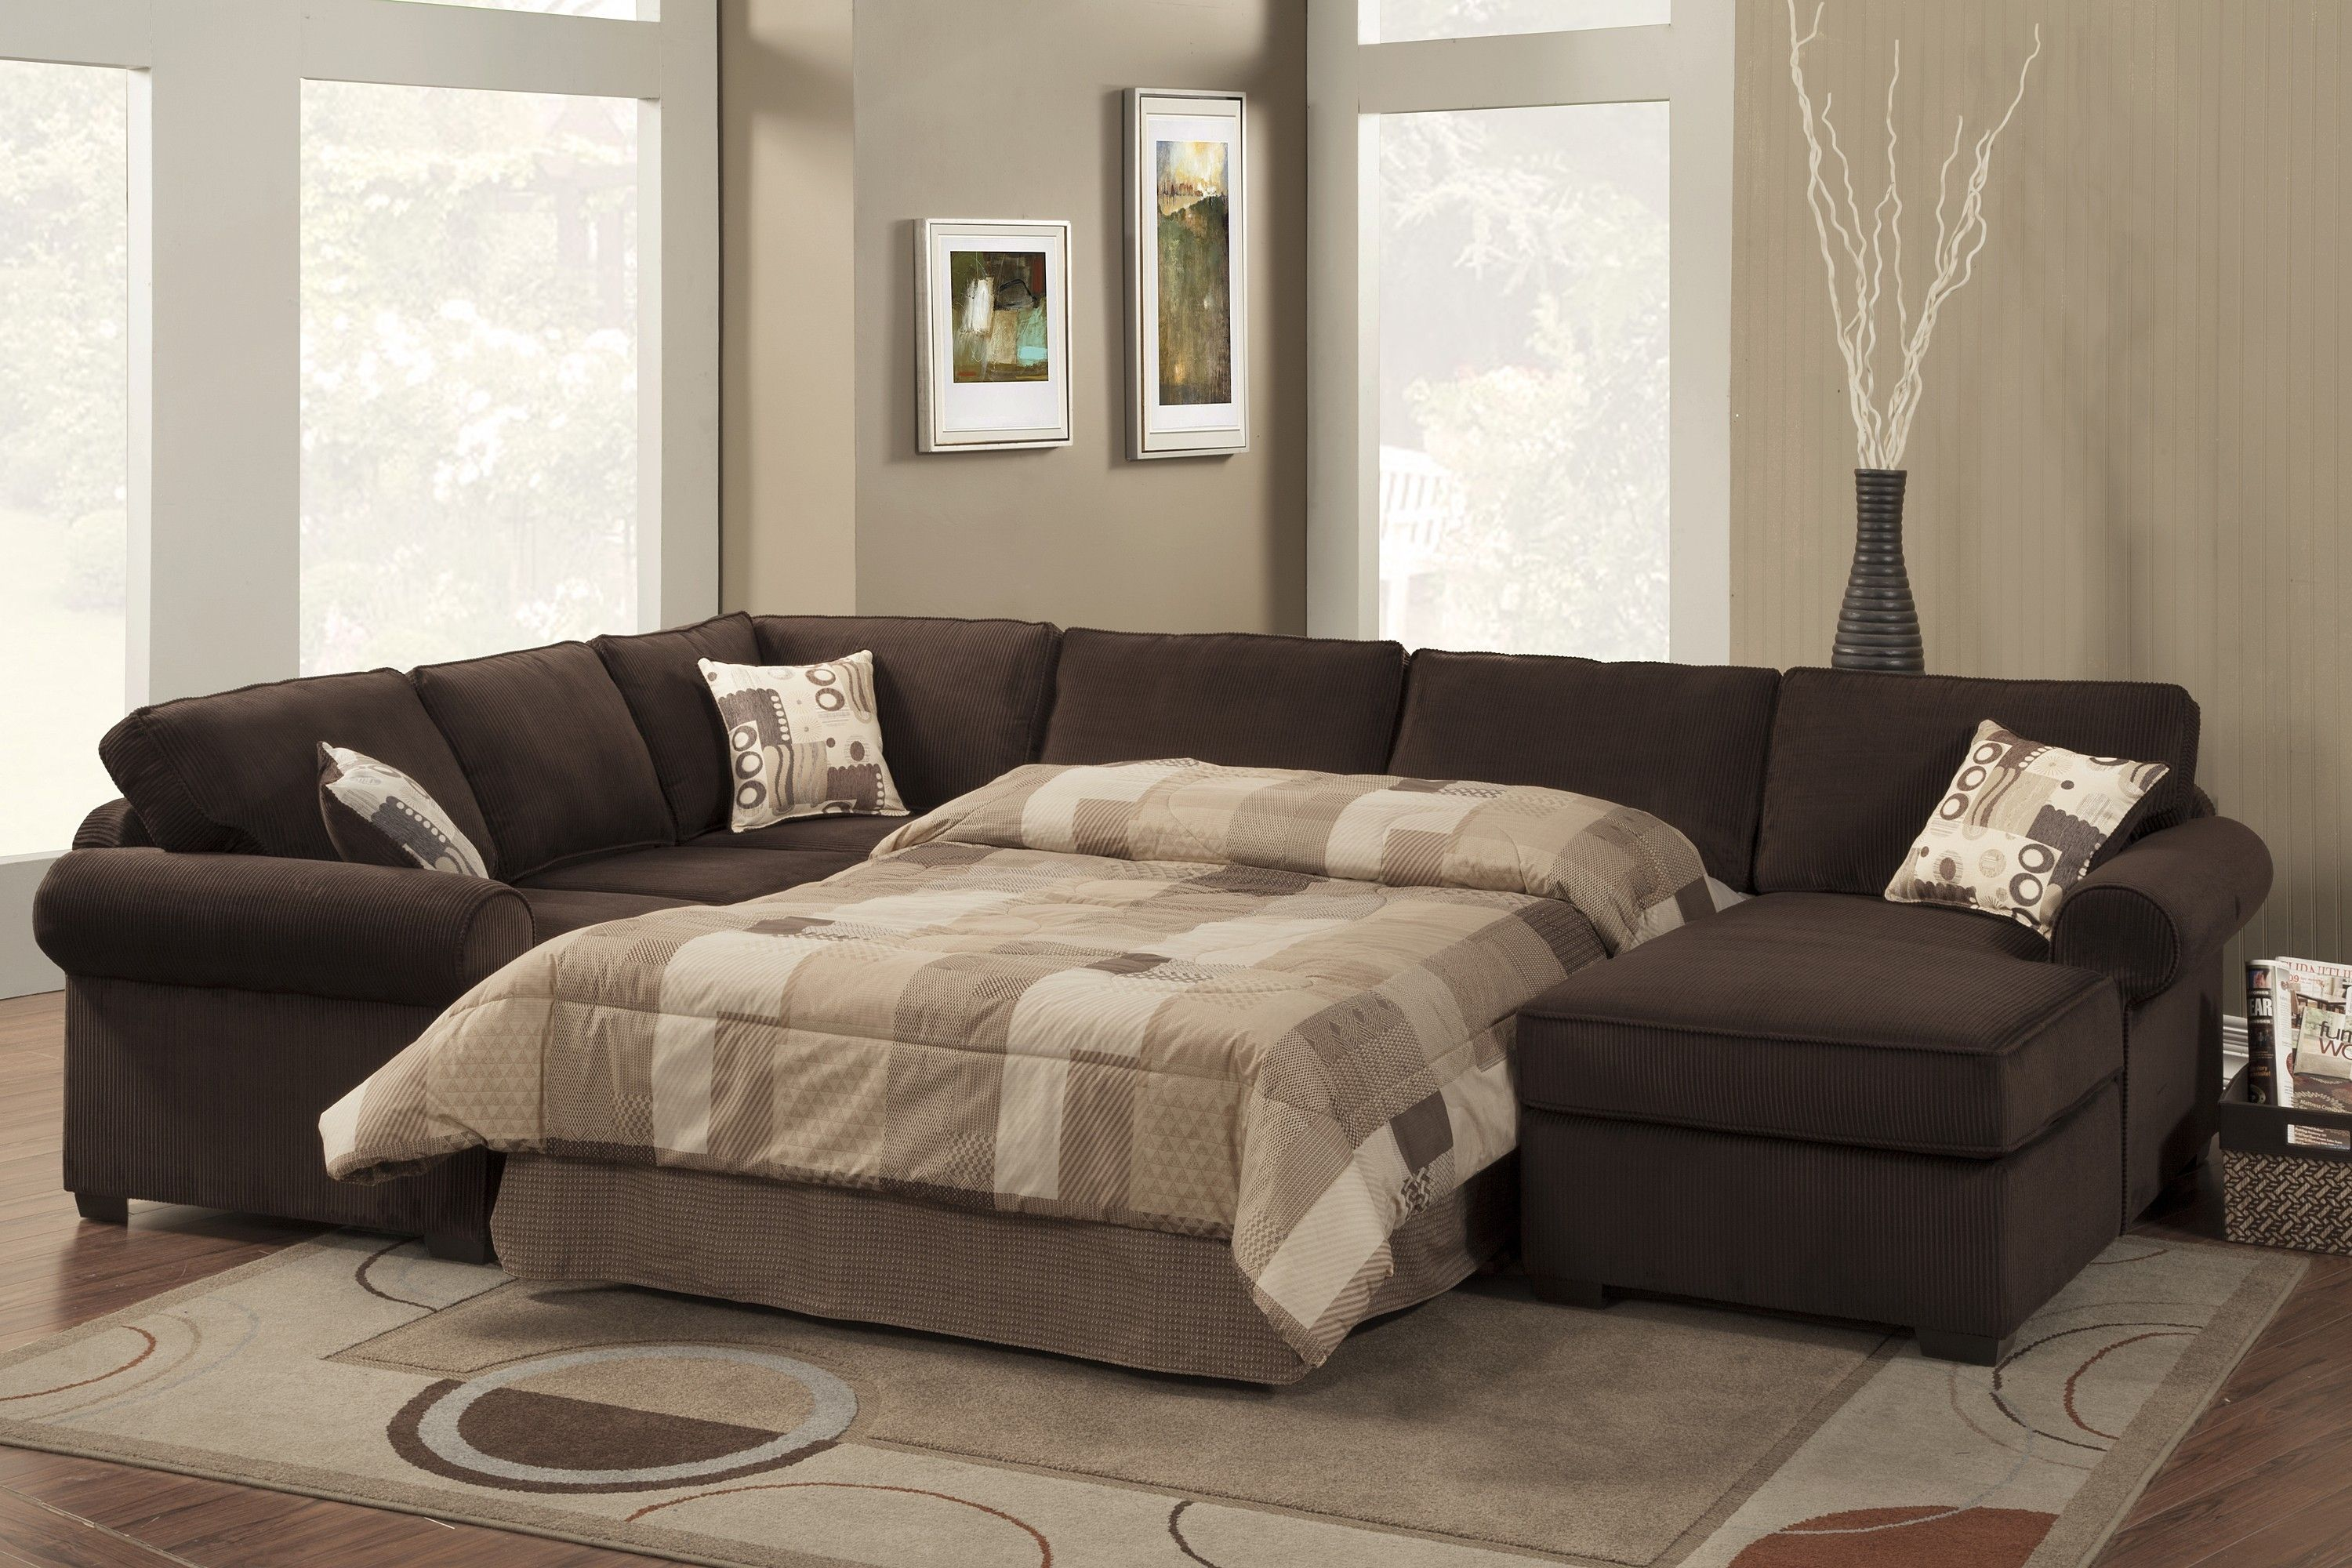 Sectional Sleeper Sofa: Style With Comfort | Sofas | Sectional ...